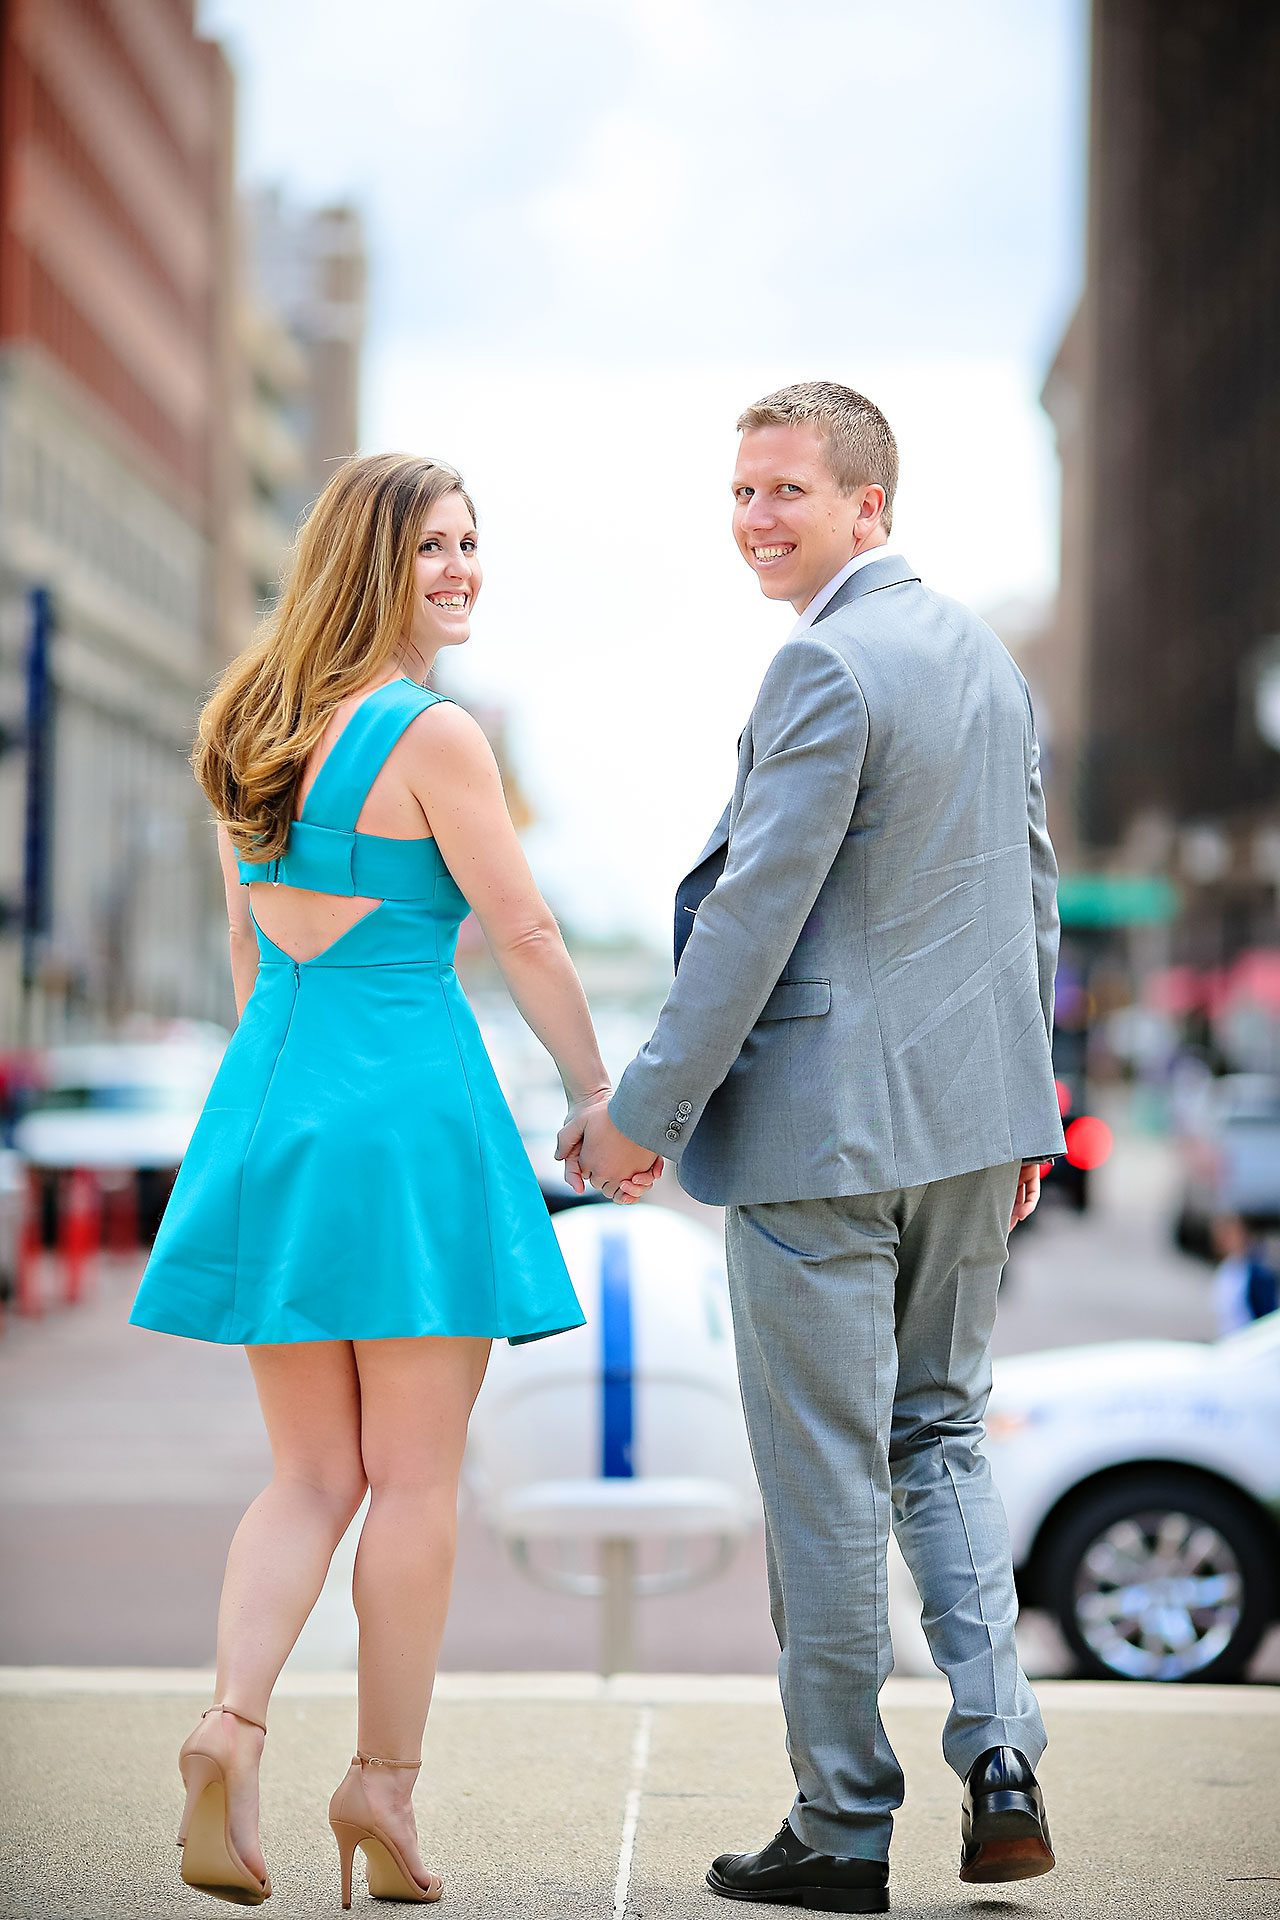 Chelsea Jeff Downtown Indy Engagement Session 050